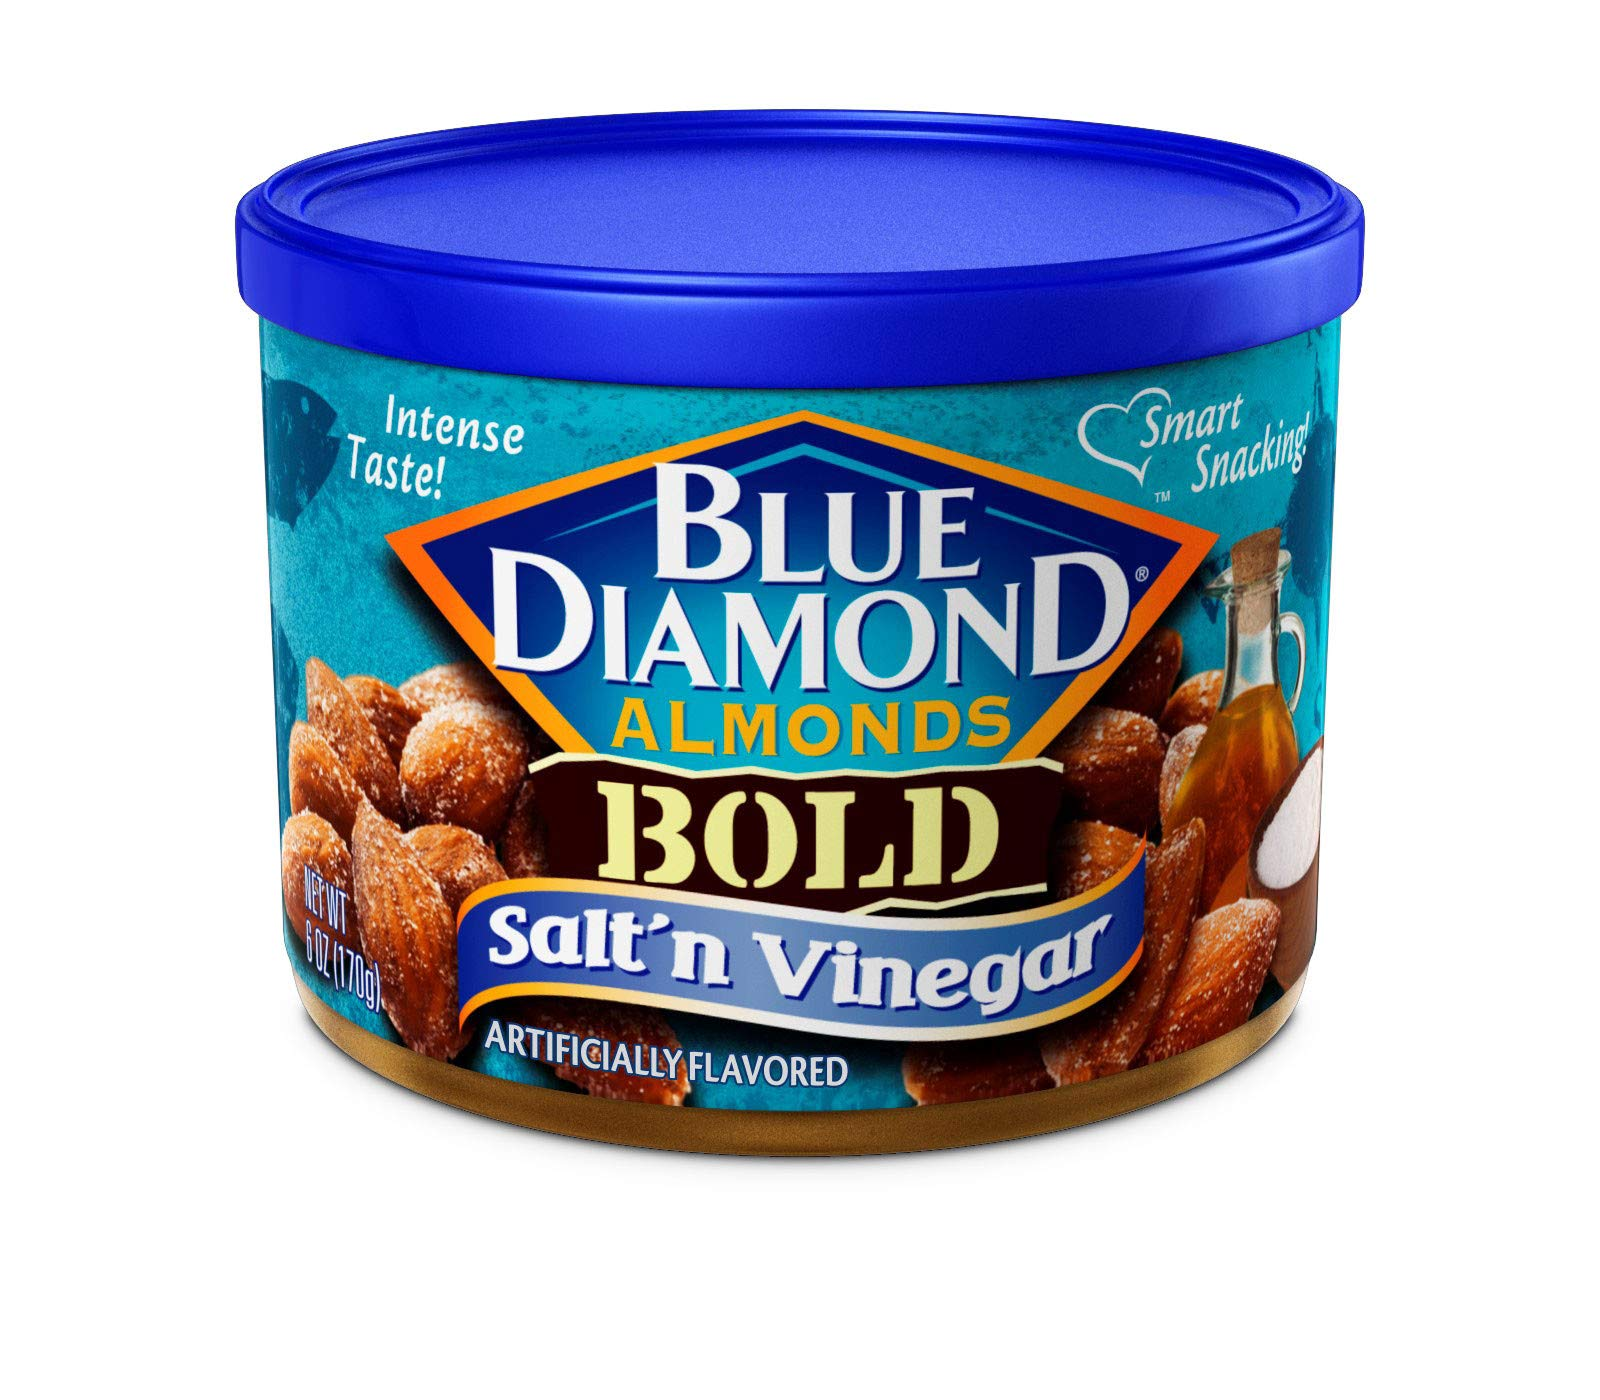 Blue Diamond Almonds, Bold Salt & Vinegar, 6 Ounce (Pack of 12)